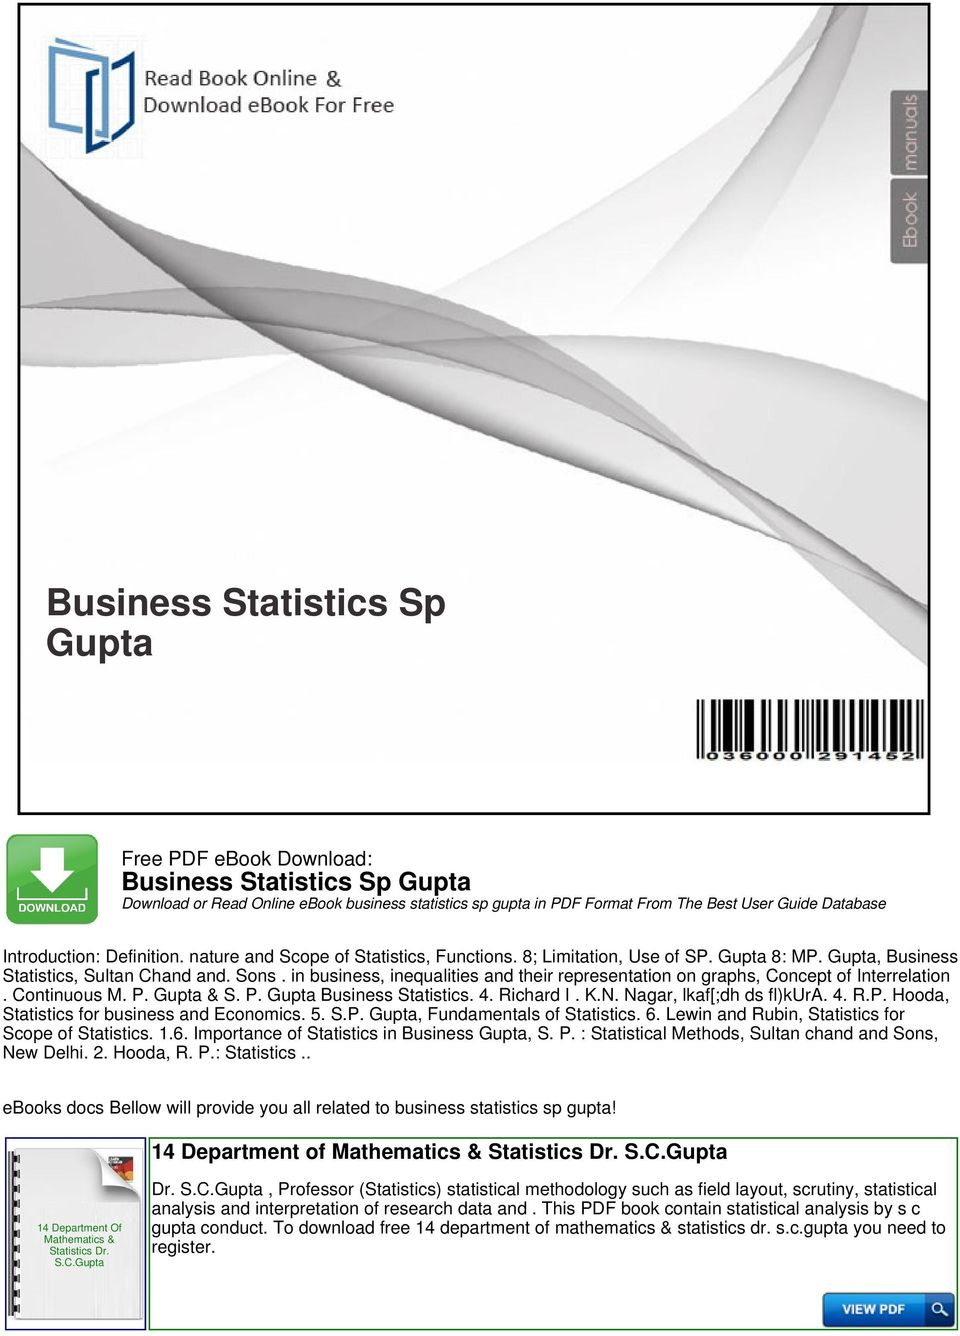 Business statistics sp gupta pdf in business inequalities and their representation on graphs concept of interrelation continuous m p fandeluxe Image collections